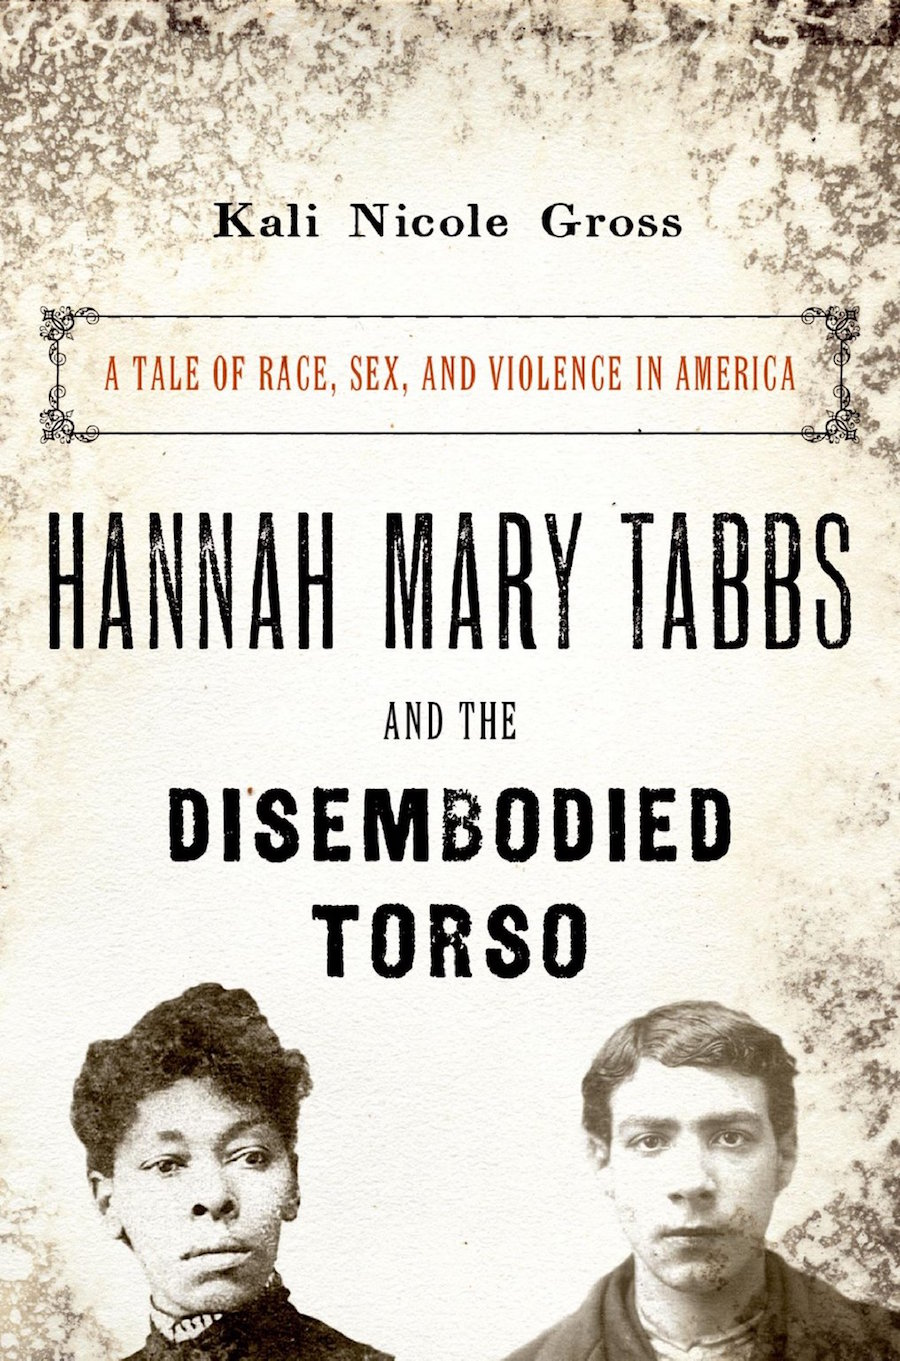 Kali Nicole Gross, Hannah Mary Tabbs and the Disembodied Torso: A Tale of Race, Sex, and Violence in America, African American Literature, KOLUMN Magazine, KOLUMN